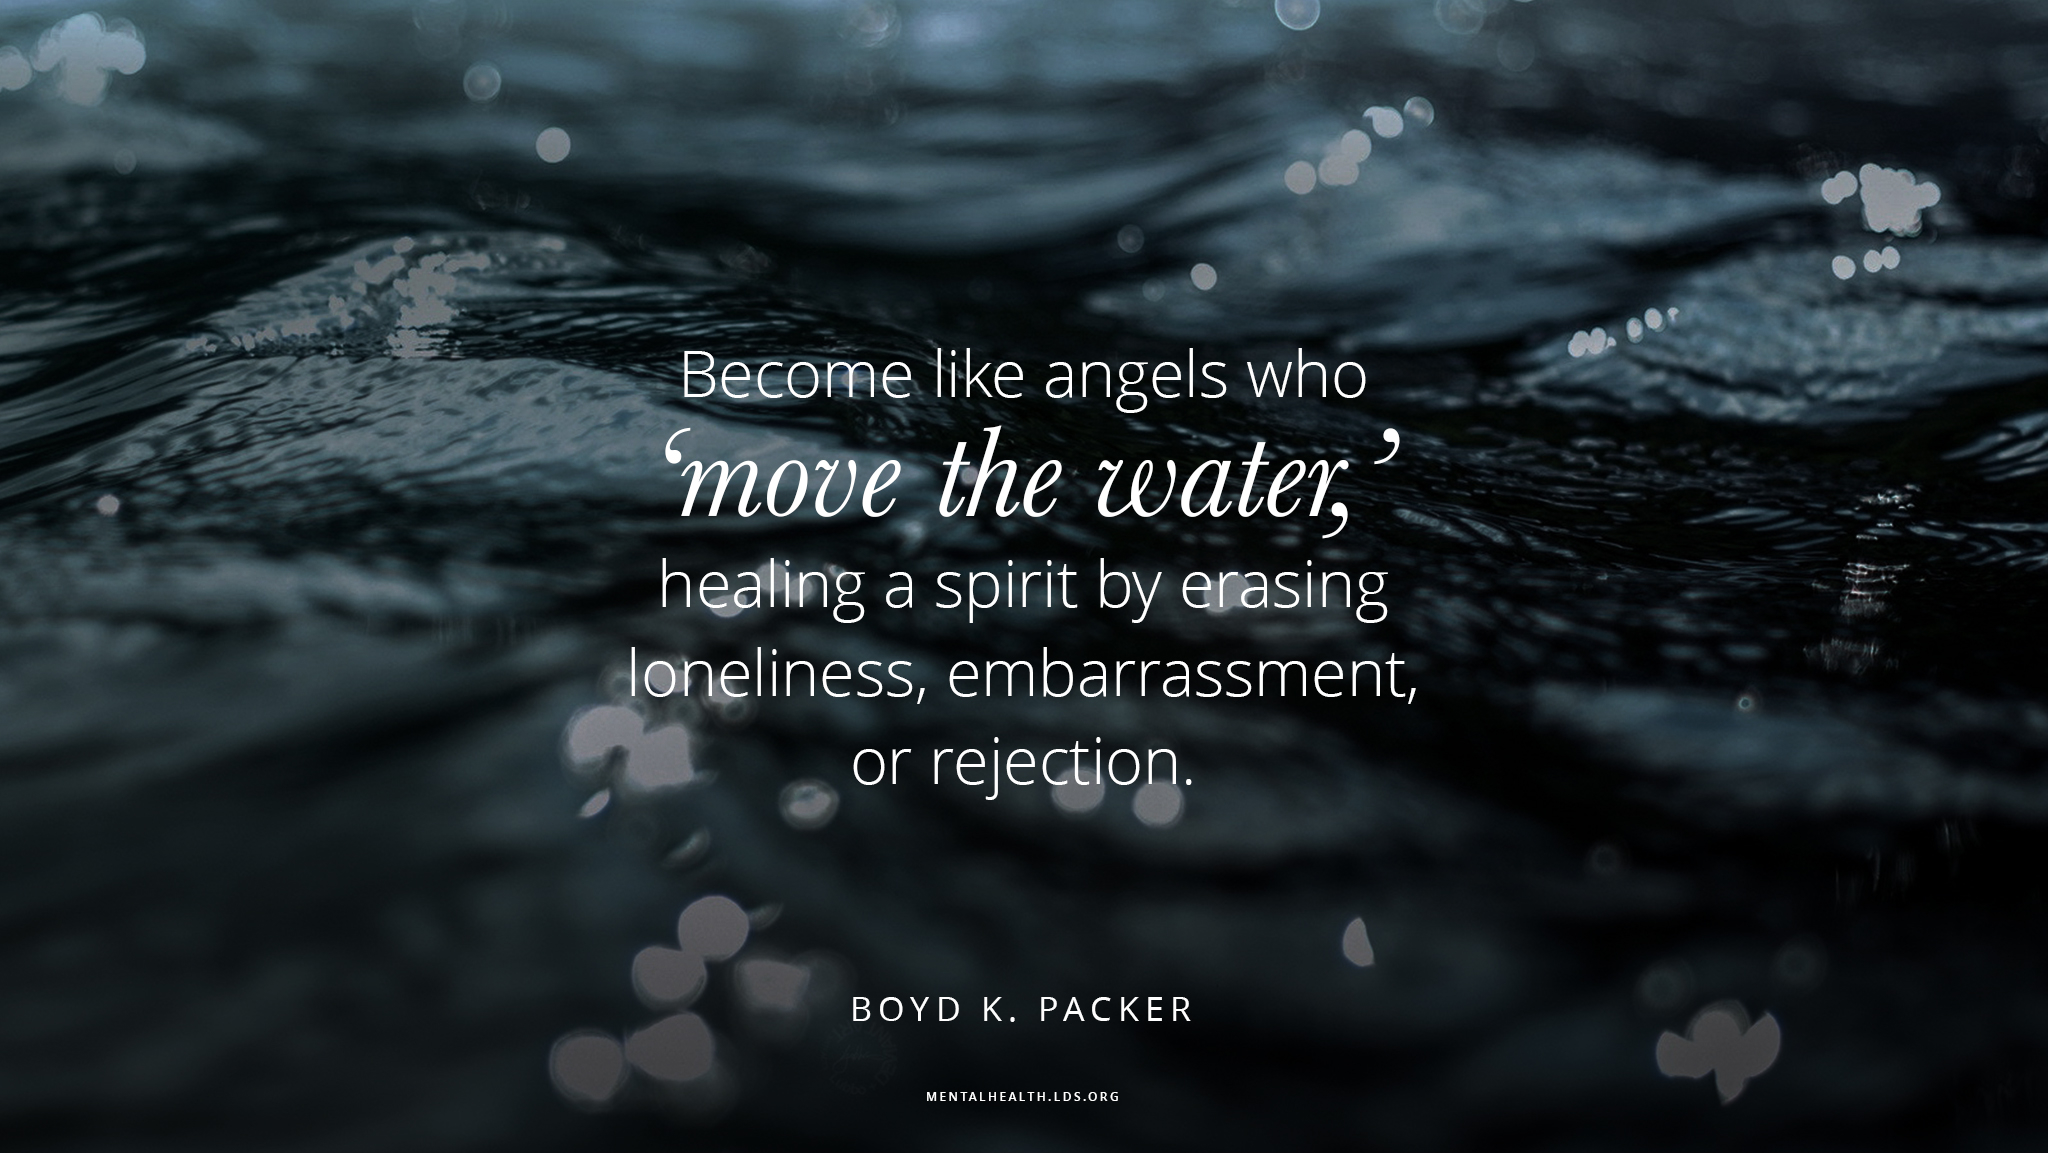 """Become like angels who 'move the water,' healing a spirit by erasing loneliness, embarrassment, or rejection.""—Elder Boyd K. Packer, ""The Moving of the Water"""